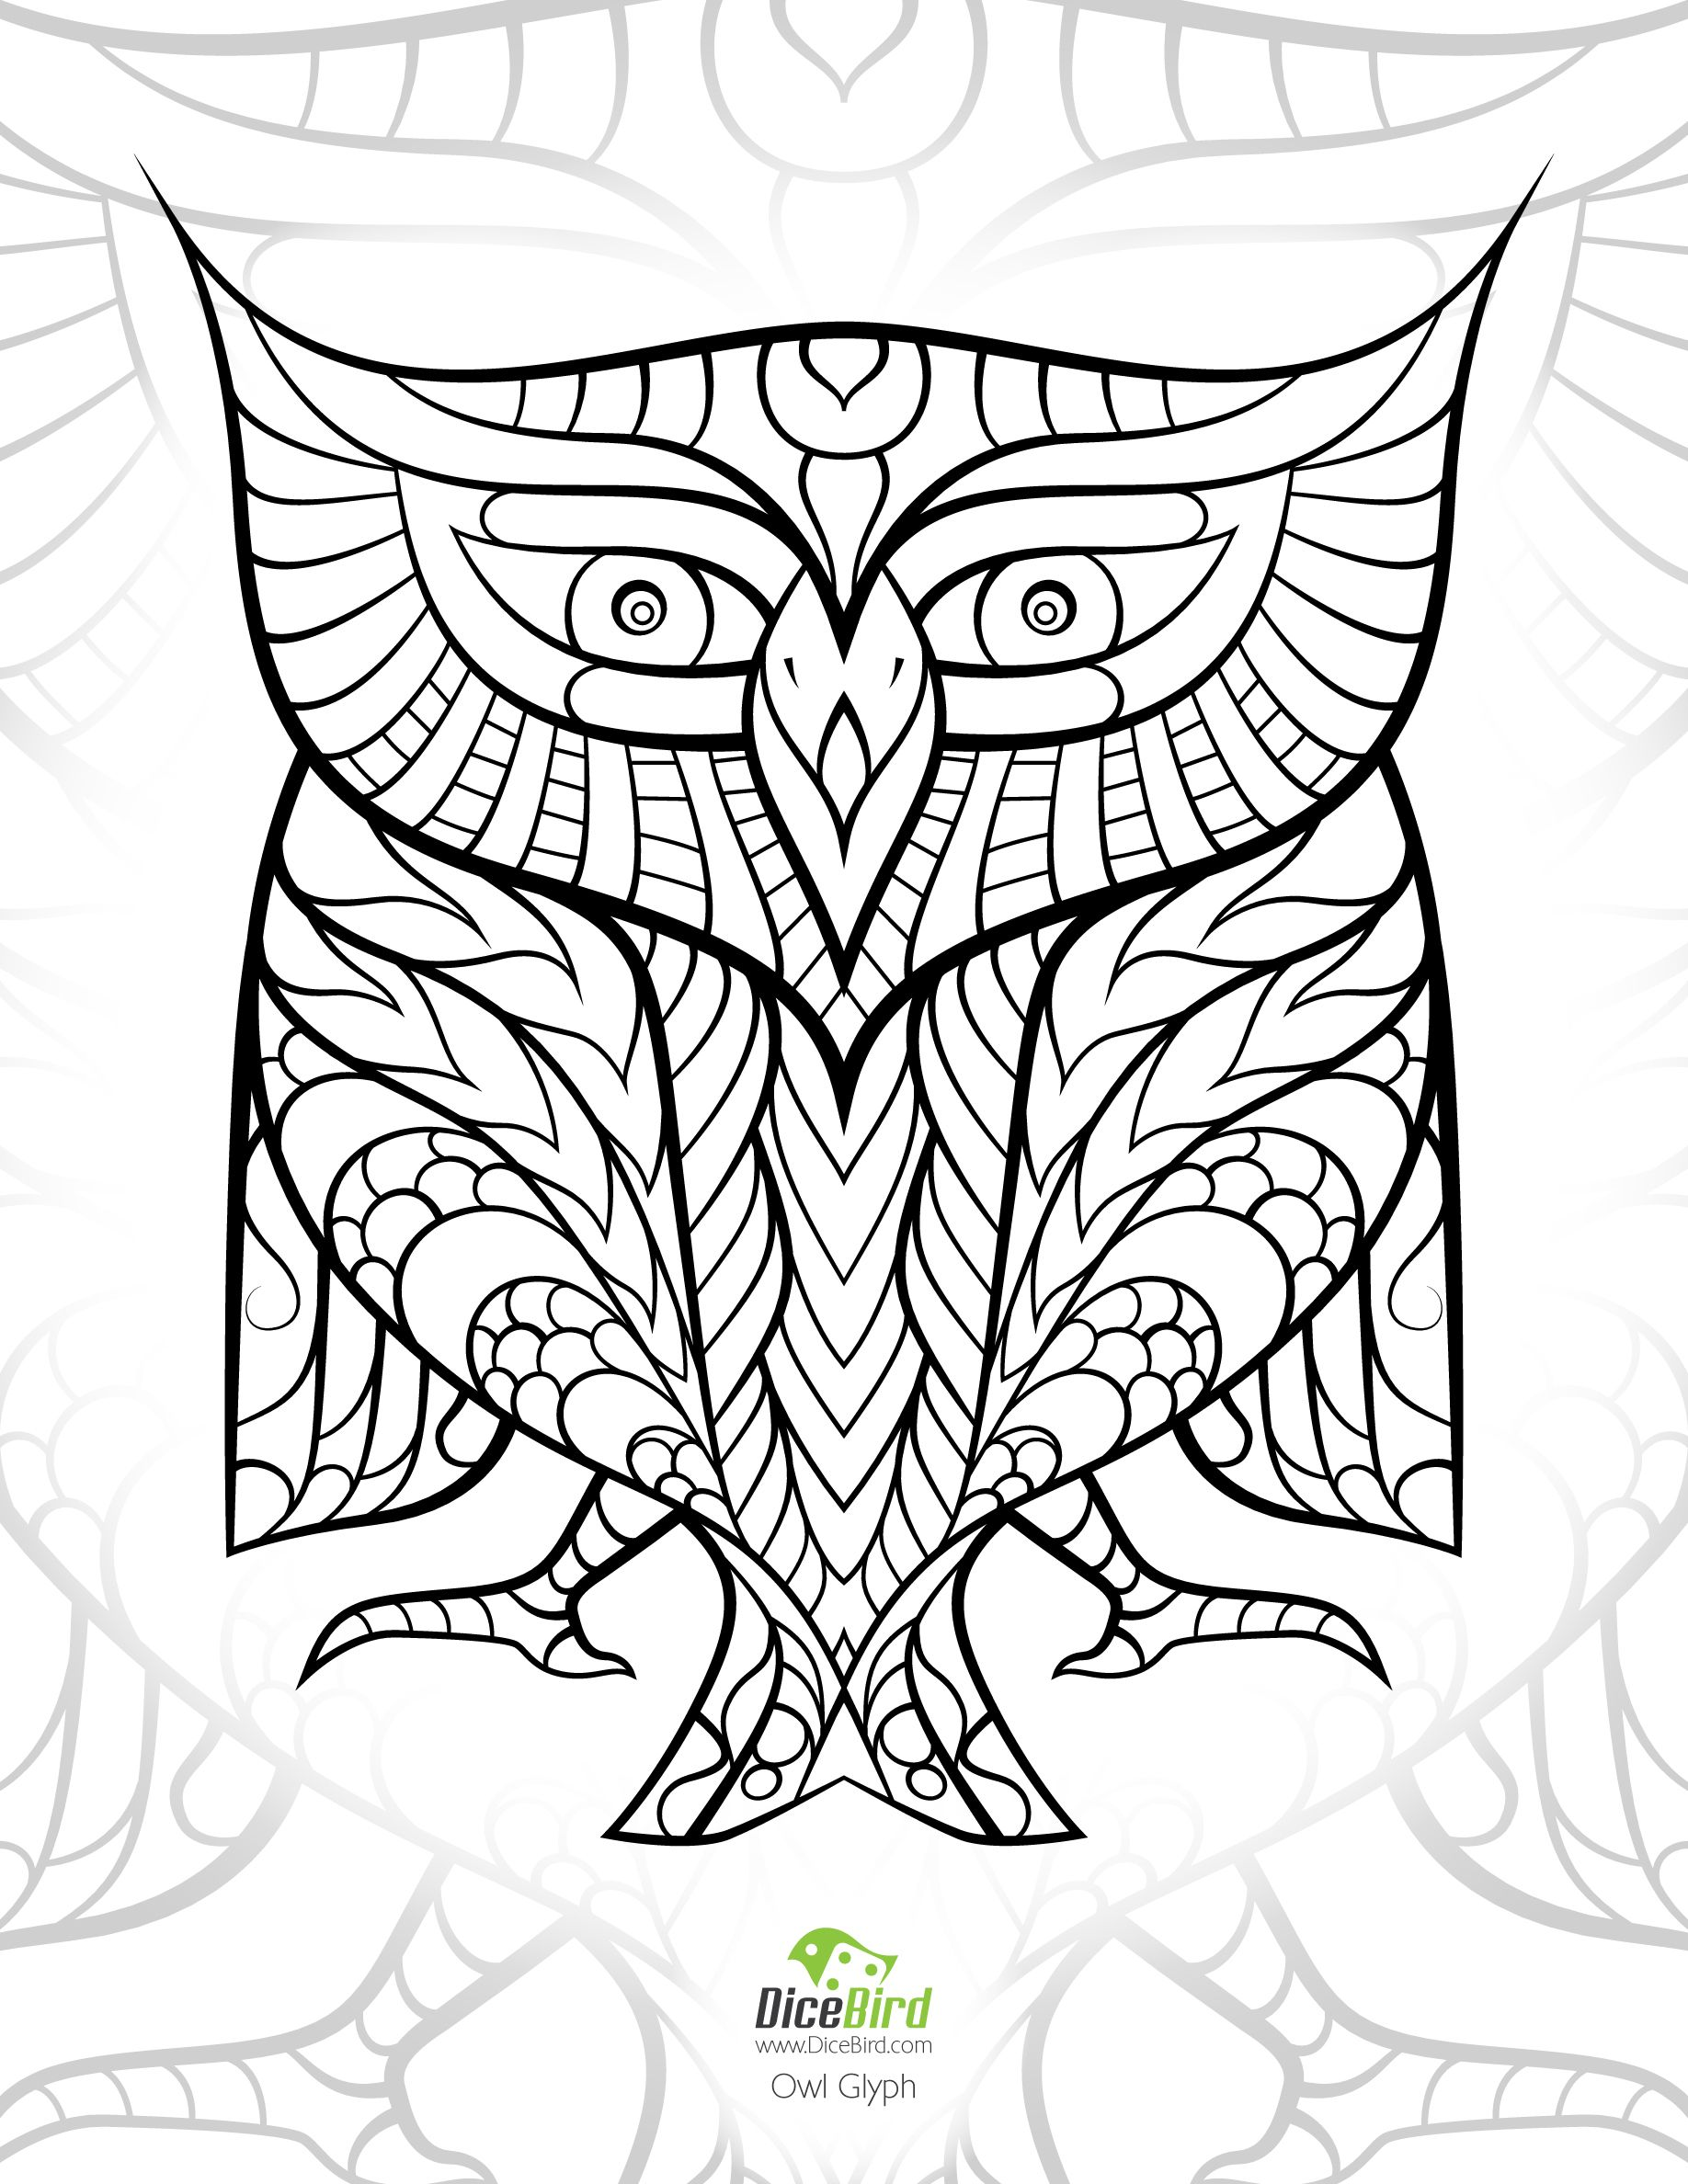 Owlglyph coloring books for adults free download | Colorear y Mandalas